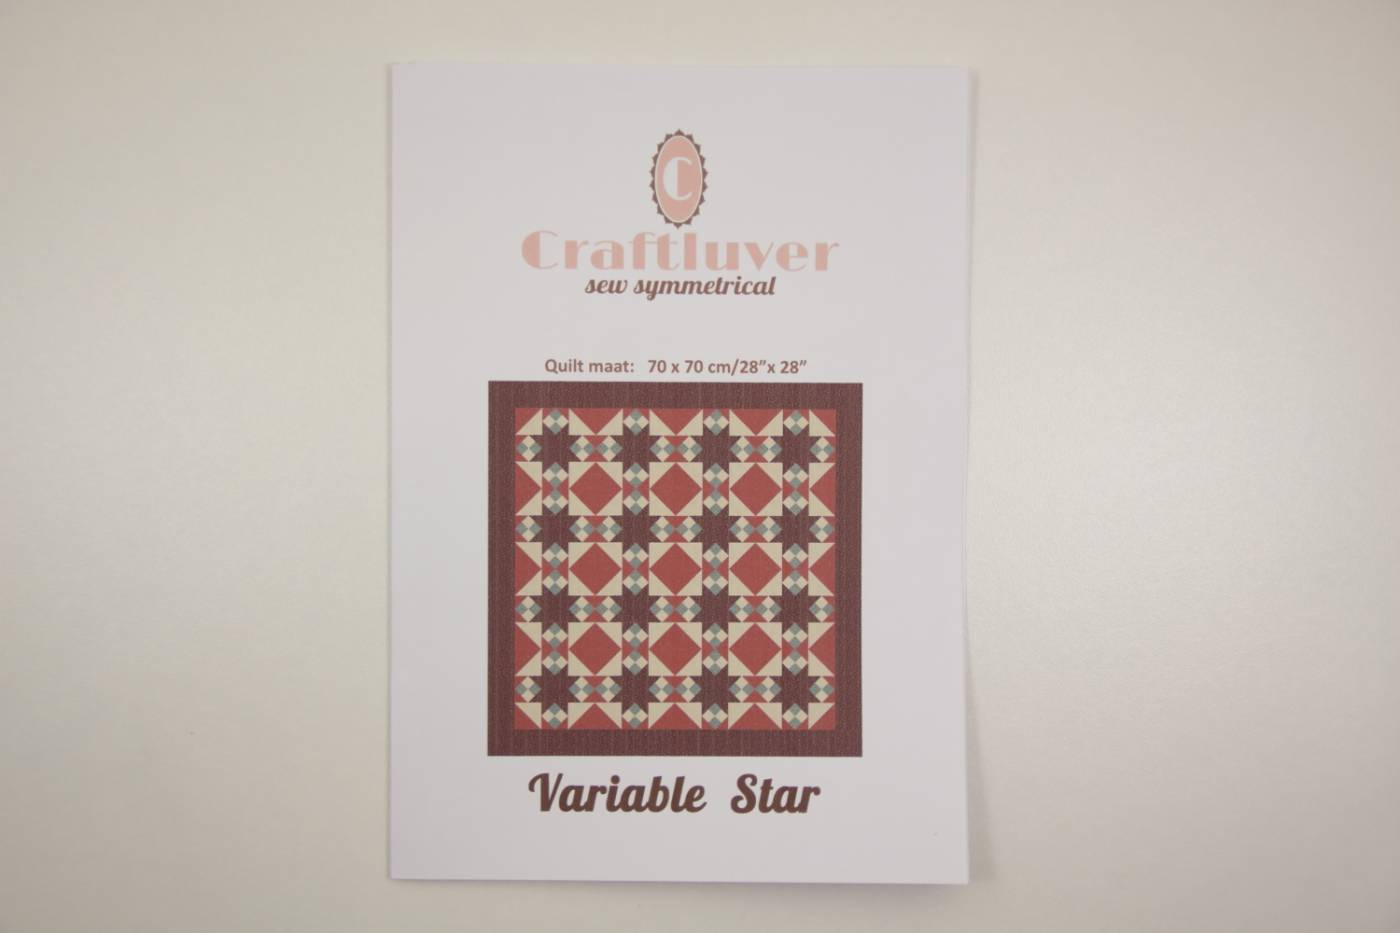 Quiltpatroon Variable Star Craftluver 70